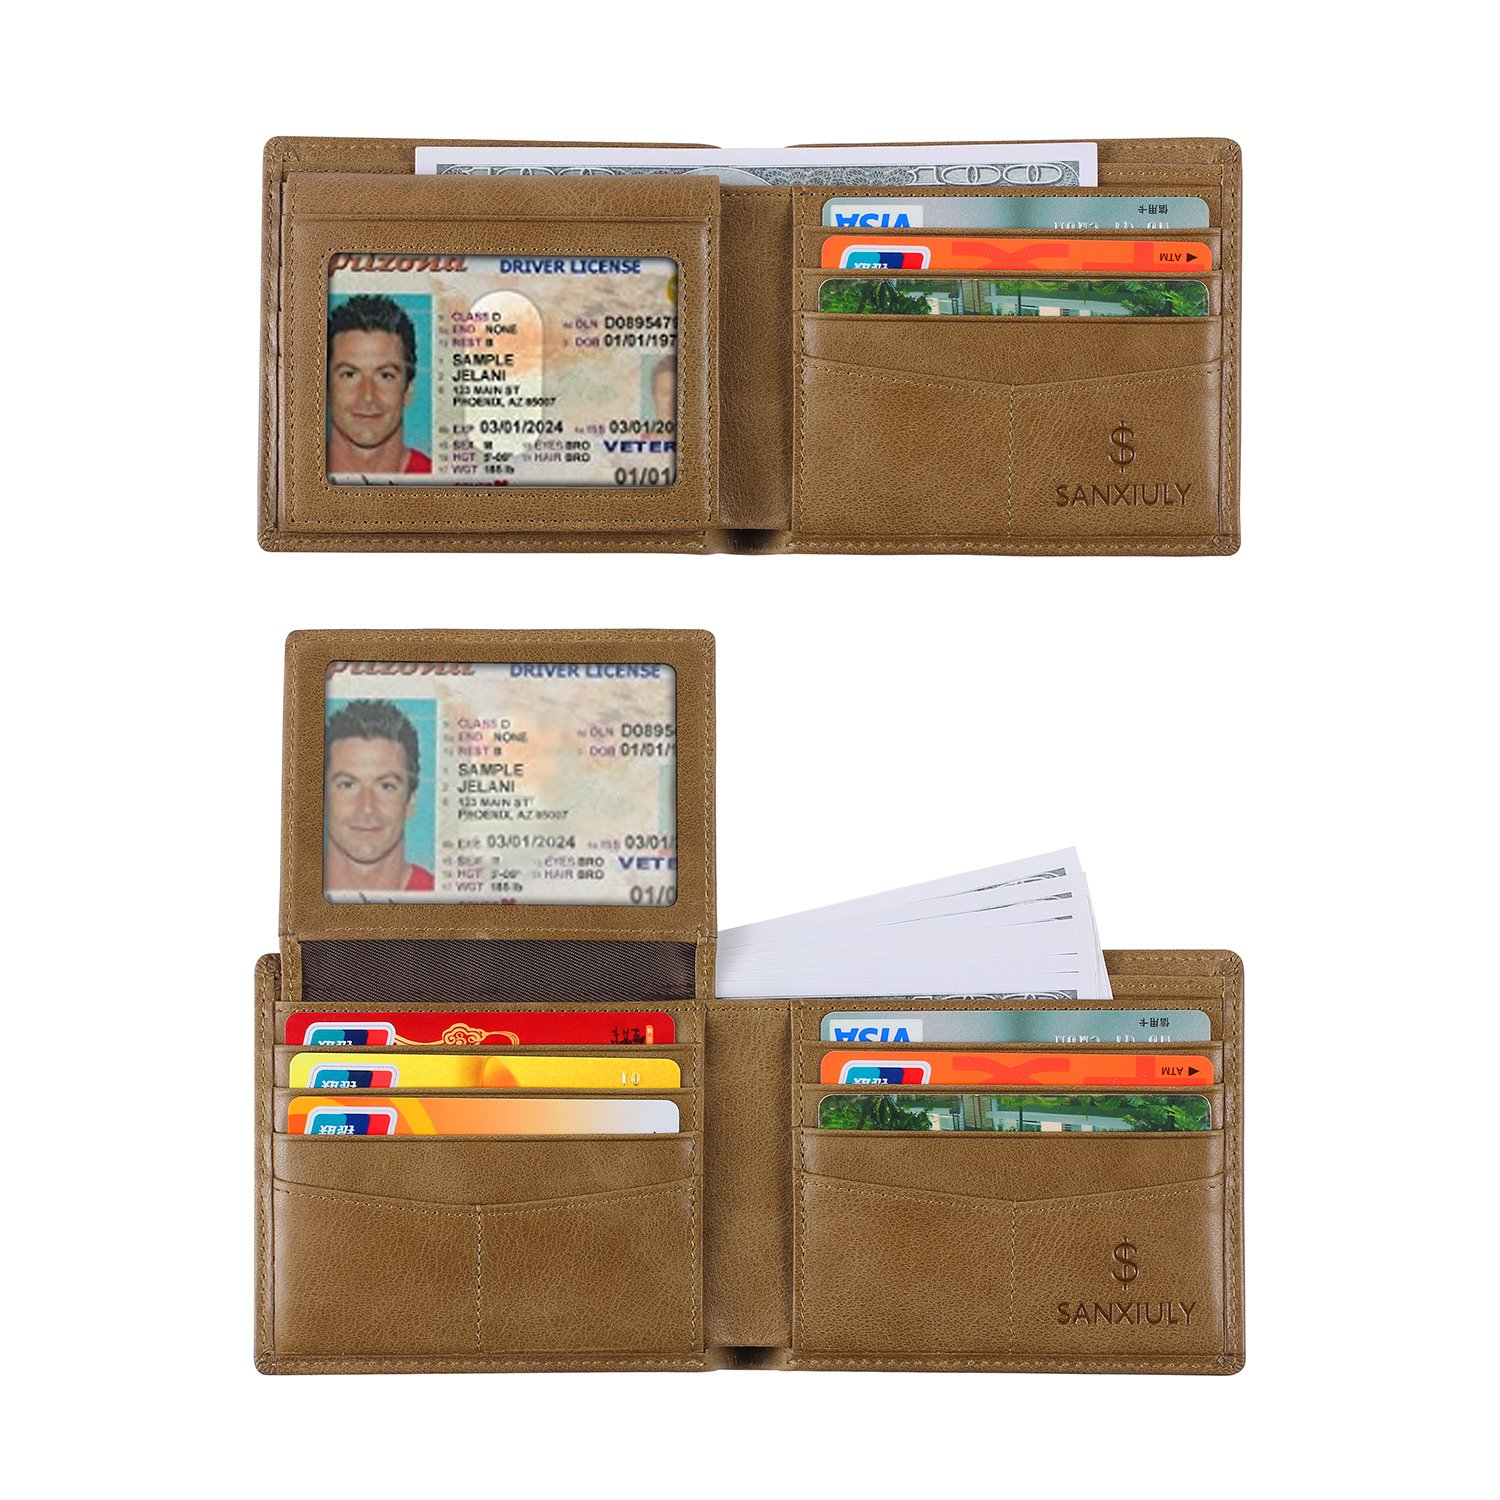 SANXIULY Mens Genuine Leather Bifold Wallet Extra Capacity With 2 ID Window And RFID Blocking color Waxed Leather Brown